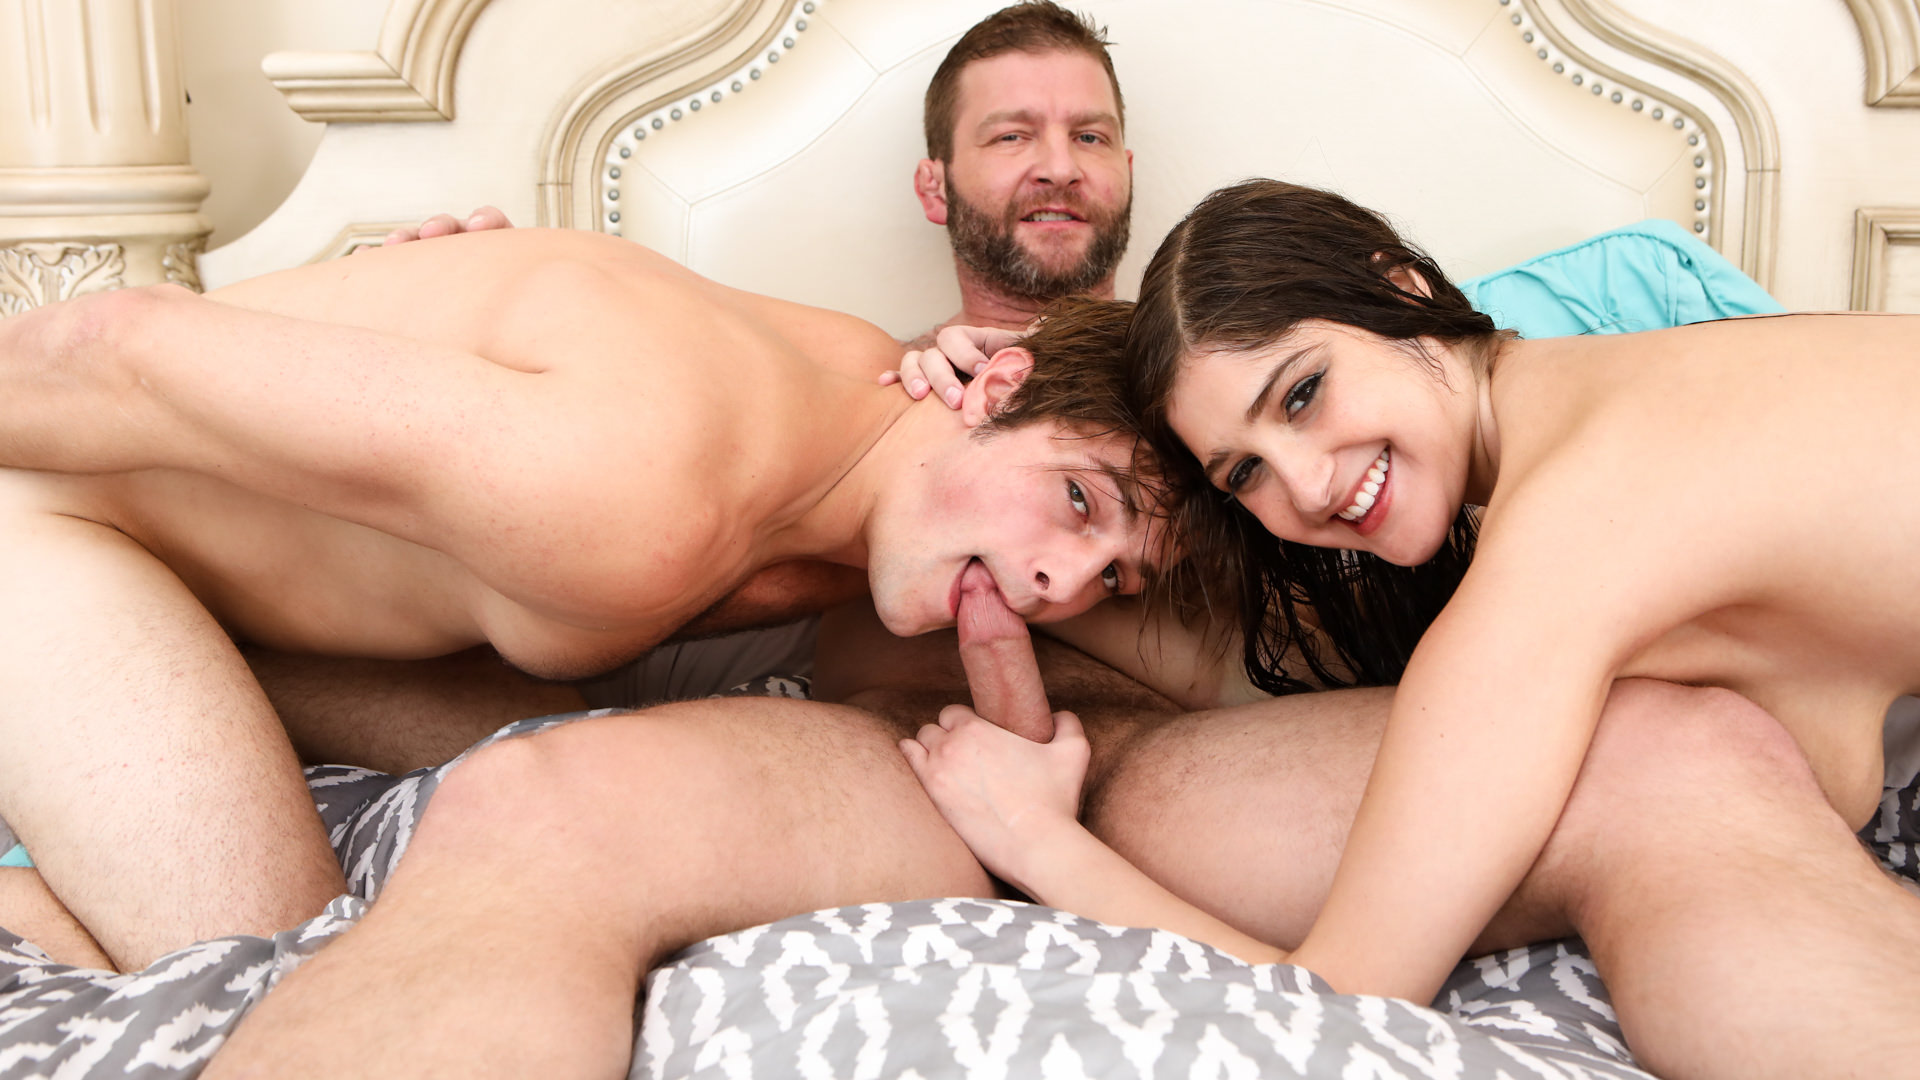 Naughty Bi Nature - Colby Jansen & Charlie Patterson & Mandy Meadows 1